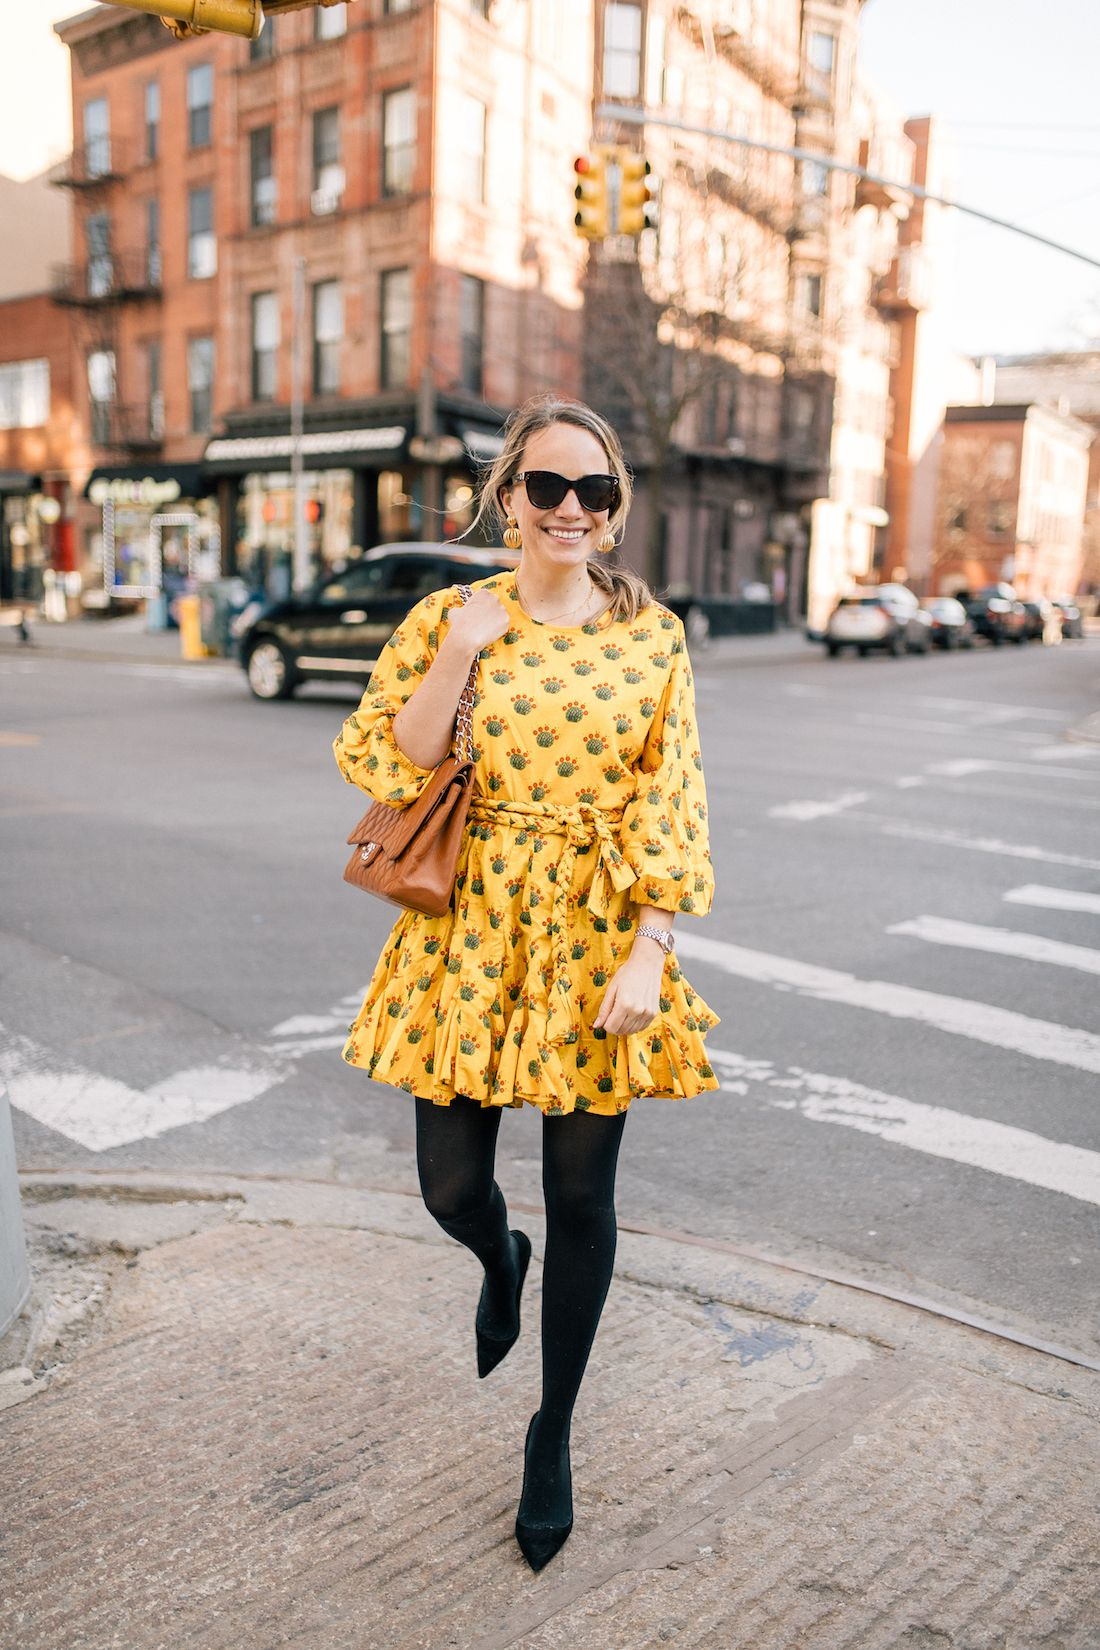 Styling A Summer Dress For Winter My 26 Hour Travel Adventure Summer Dresses Winter Dresses Dresses [ 1650 x 1100 Pixel ]